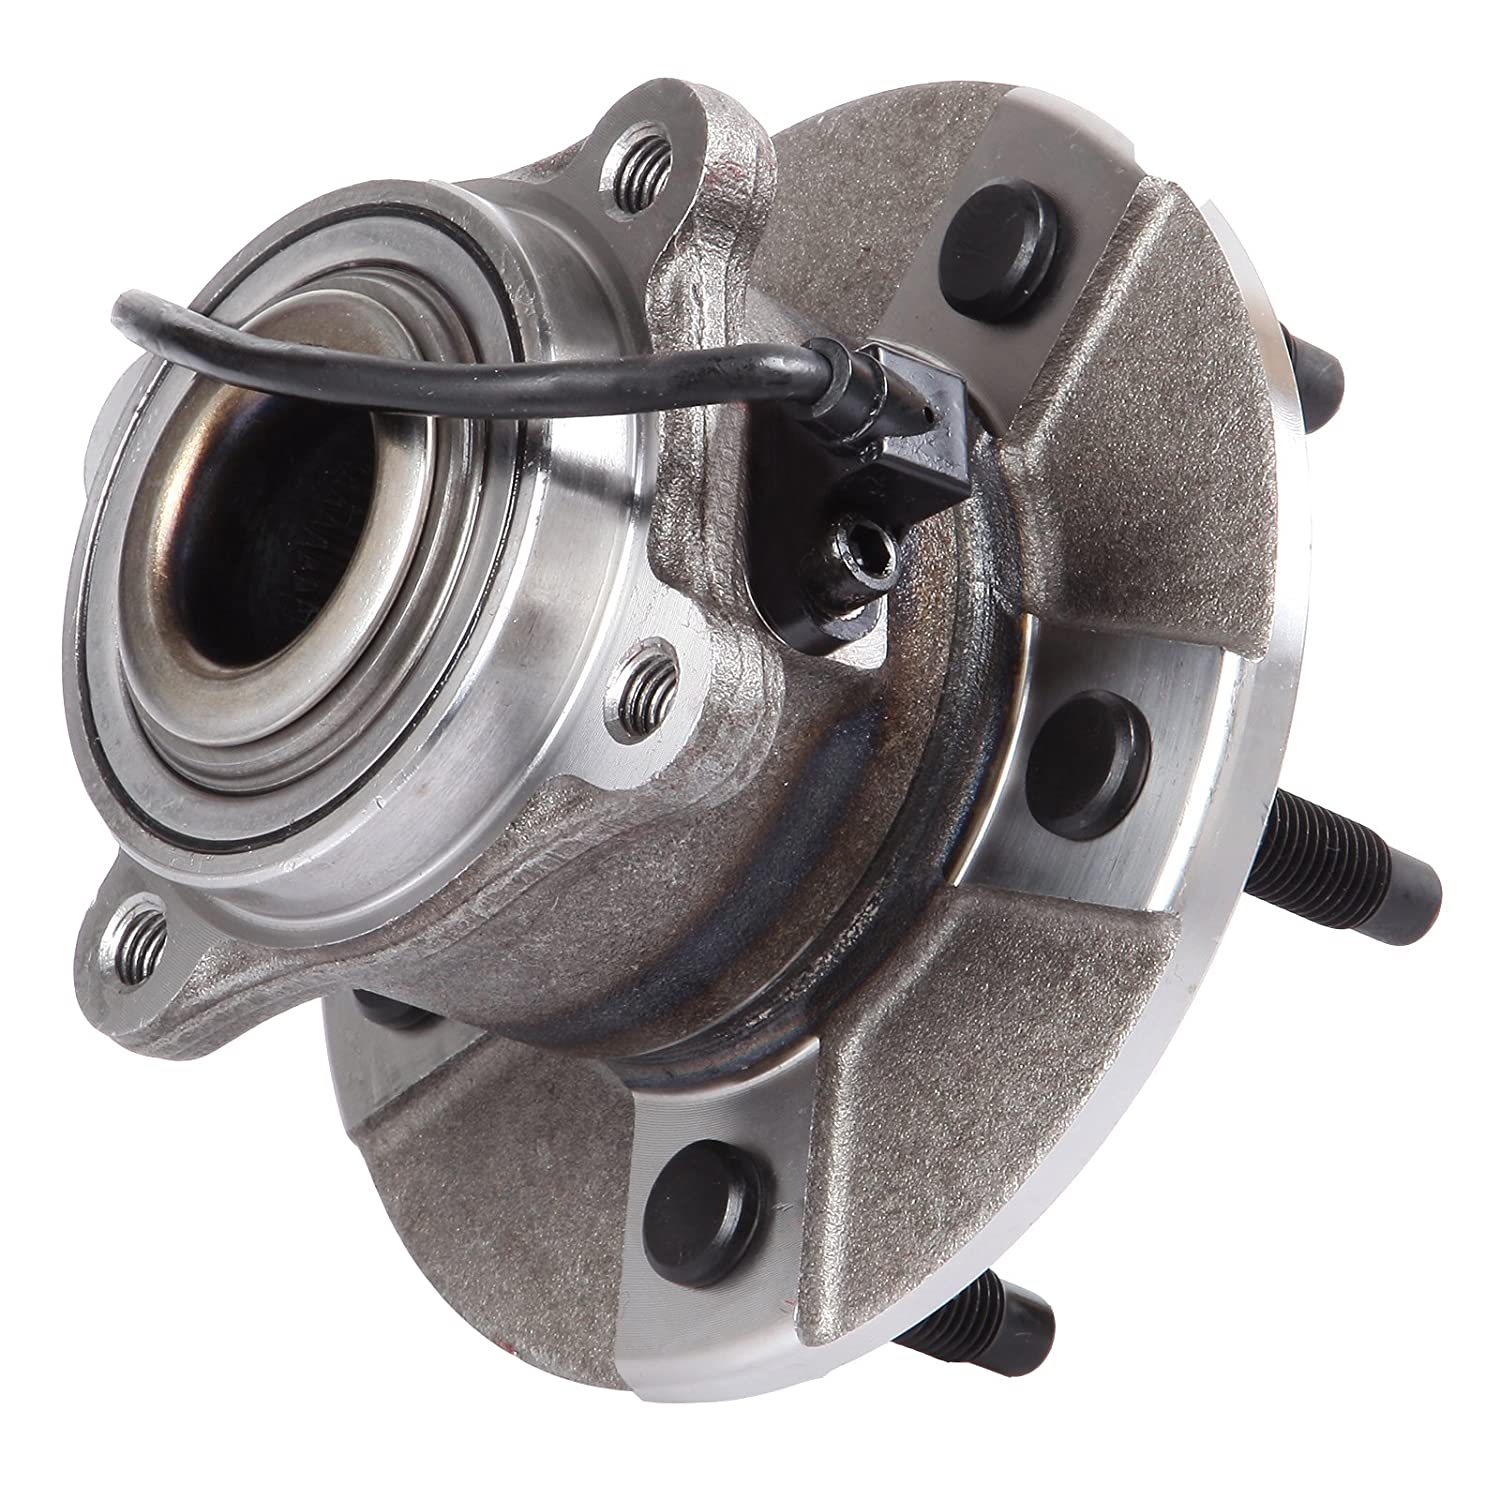 2 512229 New Rear Wheel Hub and Bearing fit 05-06 Chevy Saturn 5 Lugs W//ABS SCITOO Both